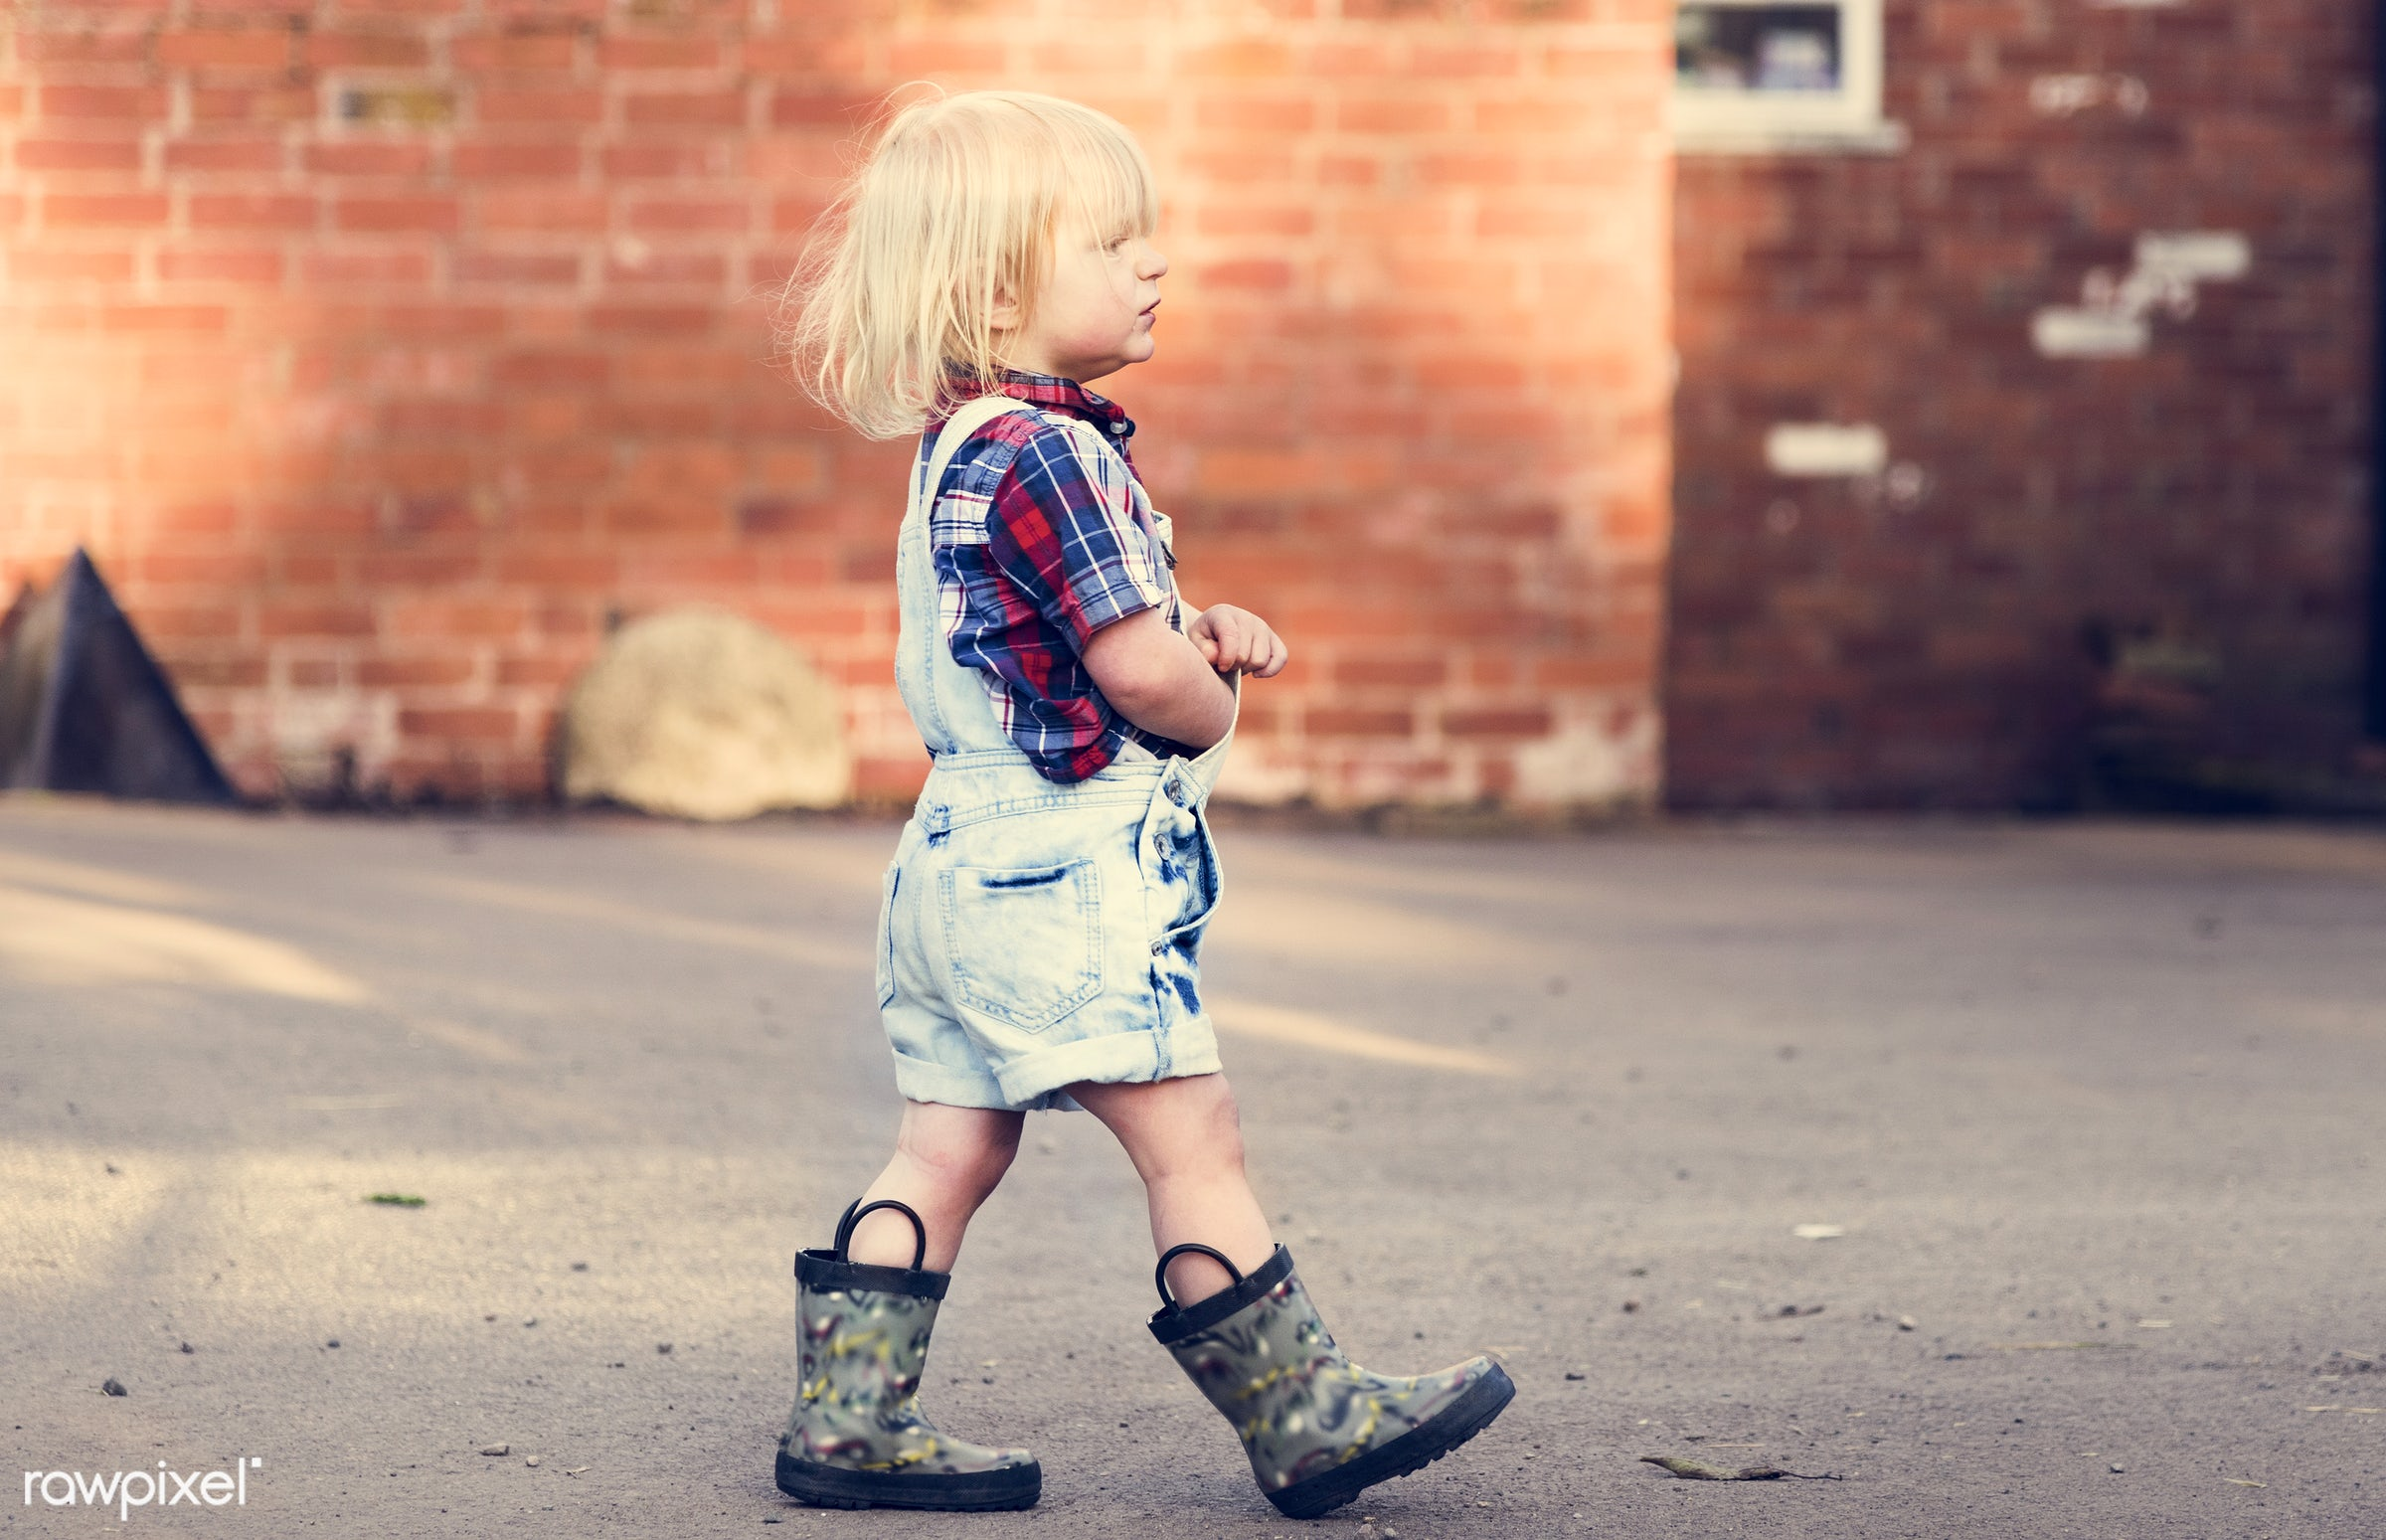 action, active, activity, adolescence, boy, child, childhood, children, development, early life, early years, energy,...